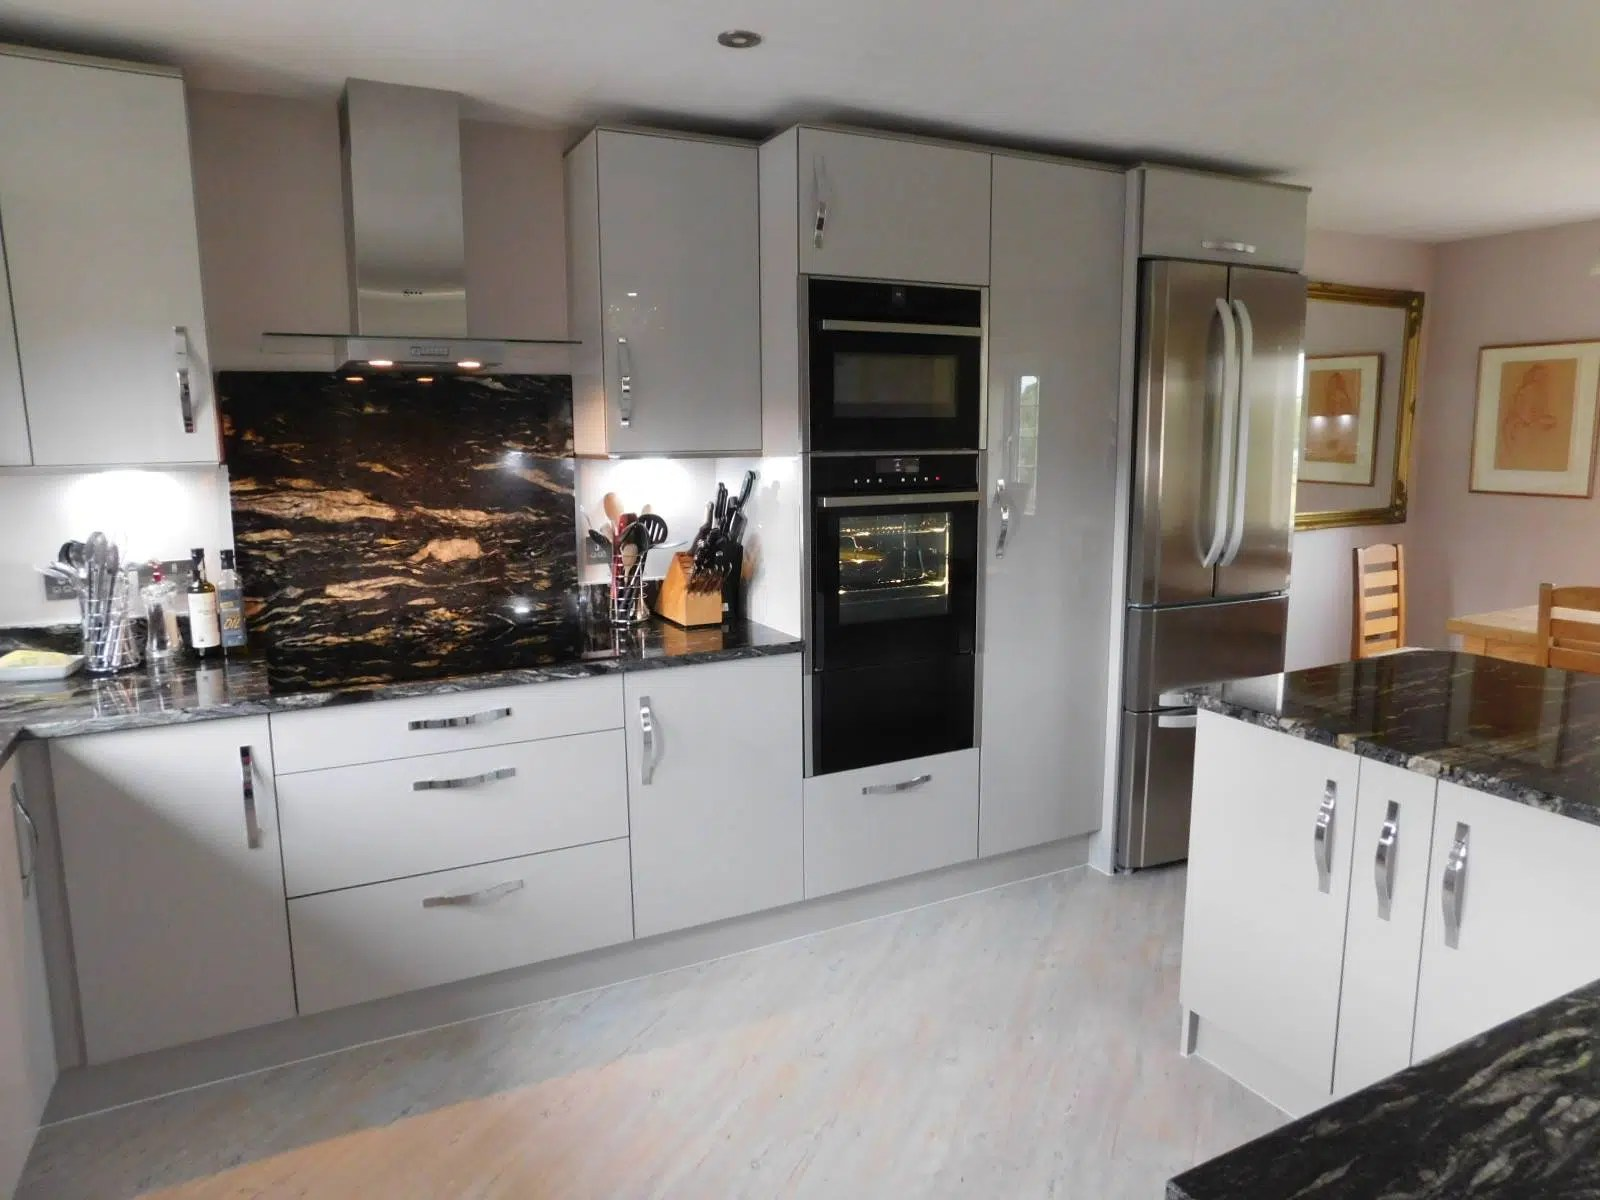 Diy Sos Kitchen Design Gallery Bespoke Kitchens Fitted Bedrooms In Whitchurch